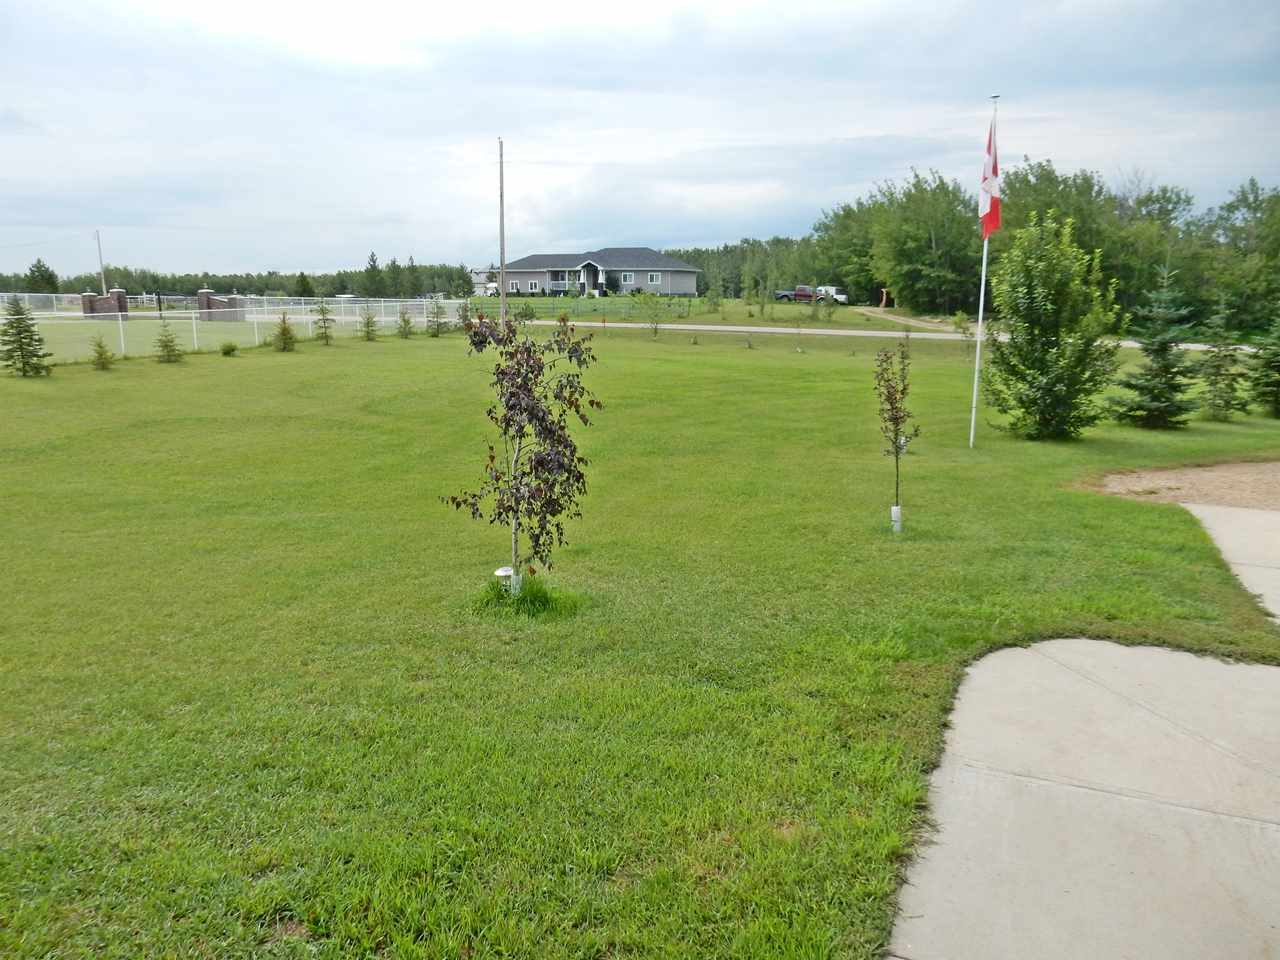 Photo 4: 4 Lost Point Lake Drive: Rural Sturgeon County House for sale : MLS(r) # E4049296